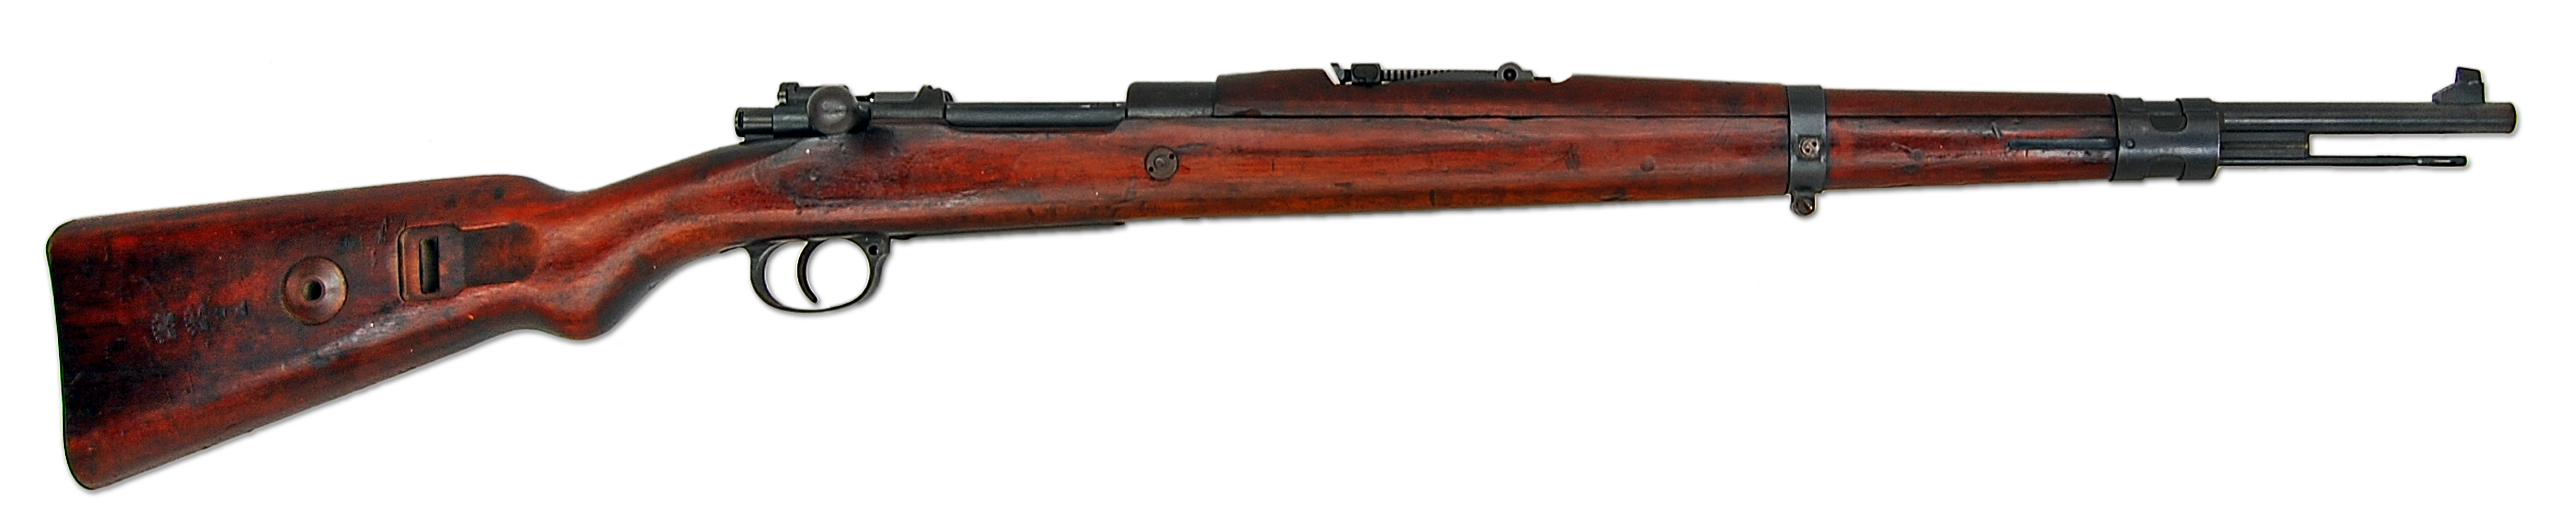 Images of Mauser Rifle | 2553x528